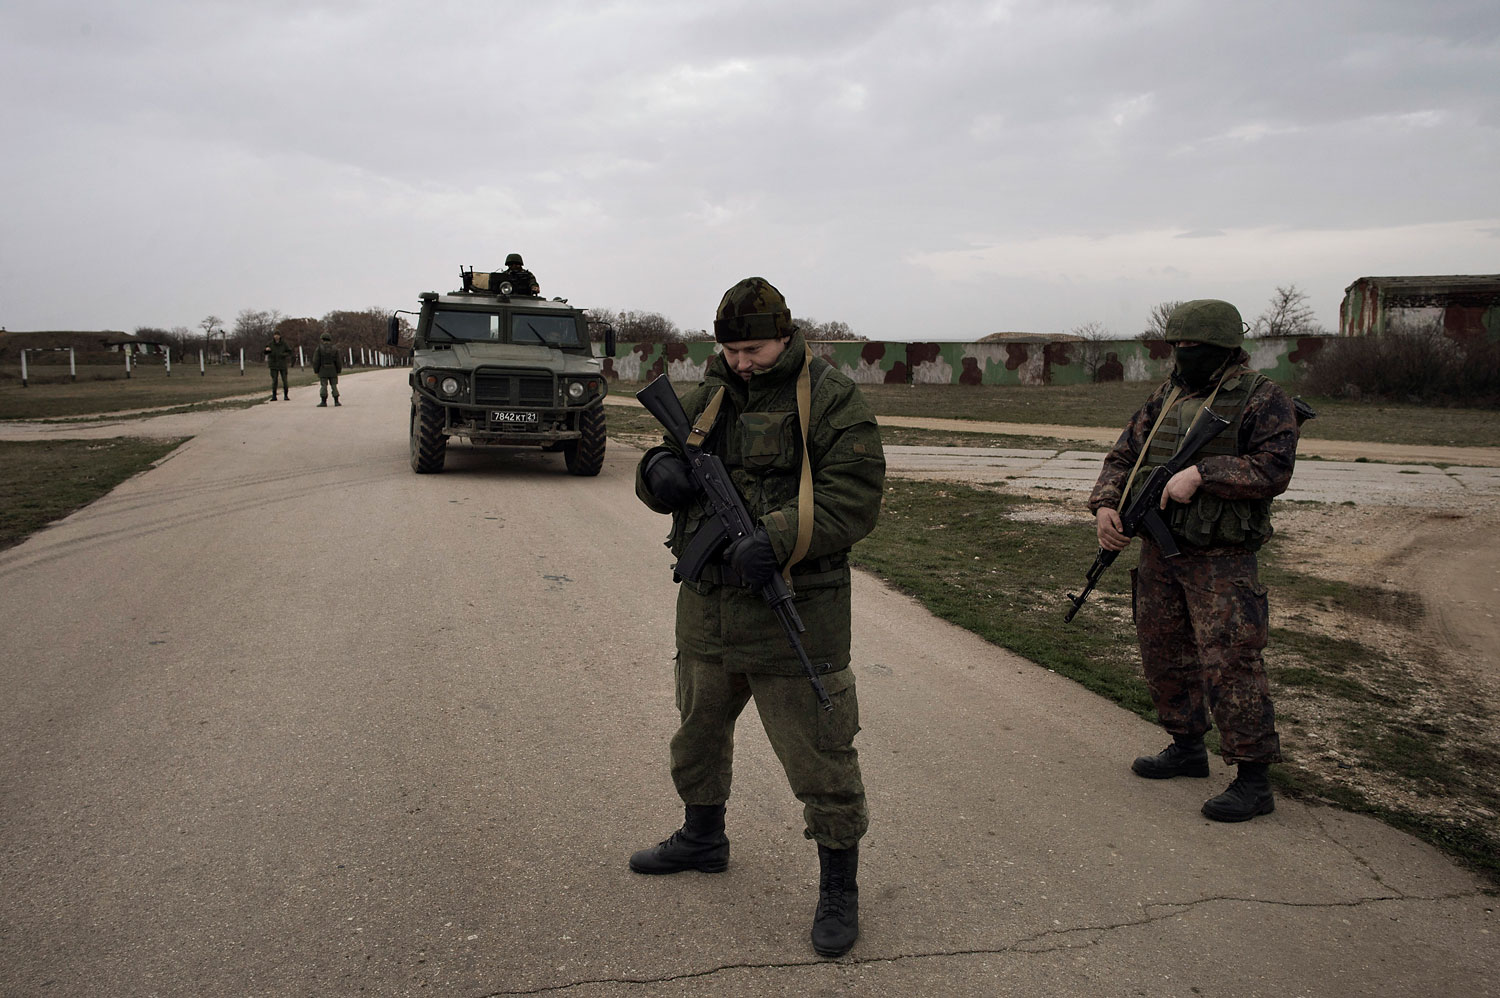 Russian soldiers at the contested Belbek airfield in Crimea on March 4, 2014